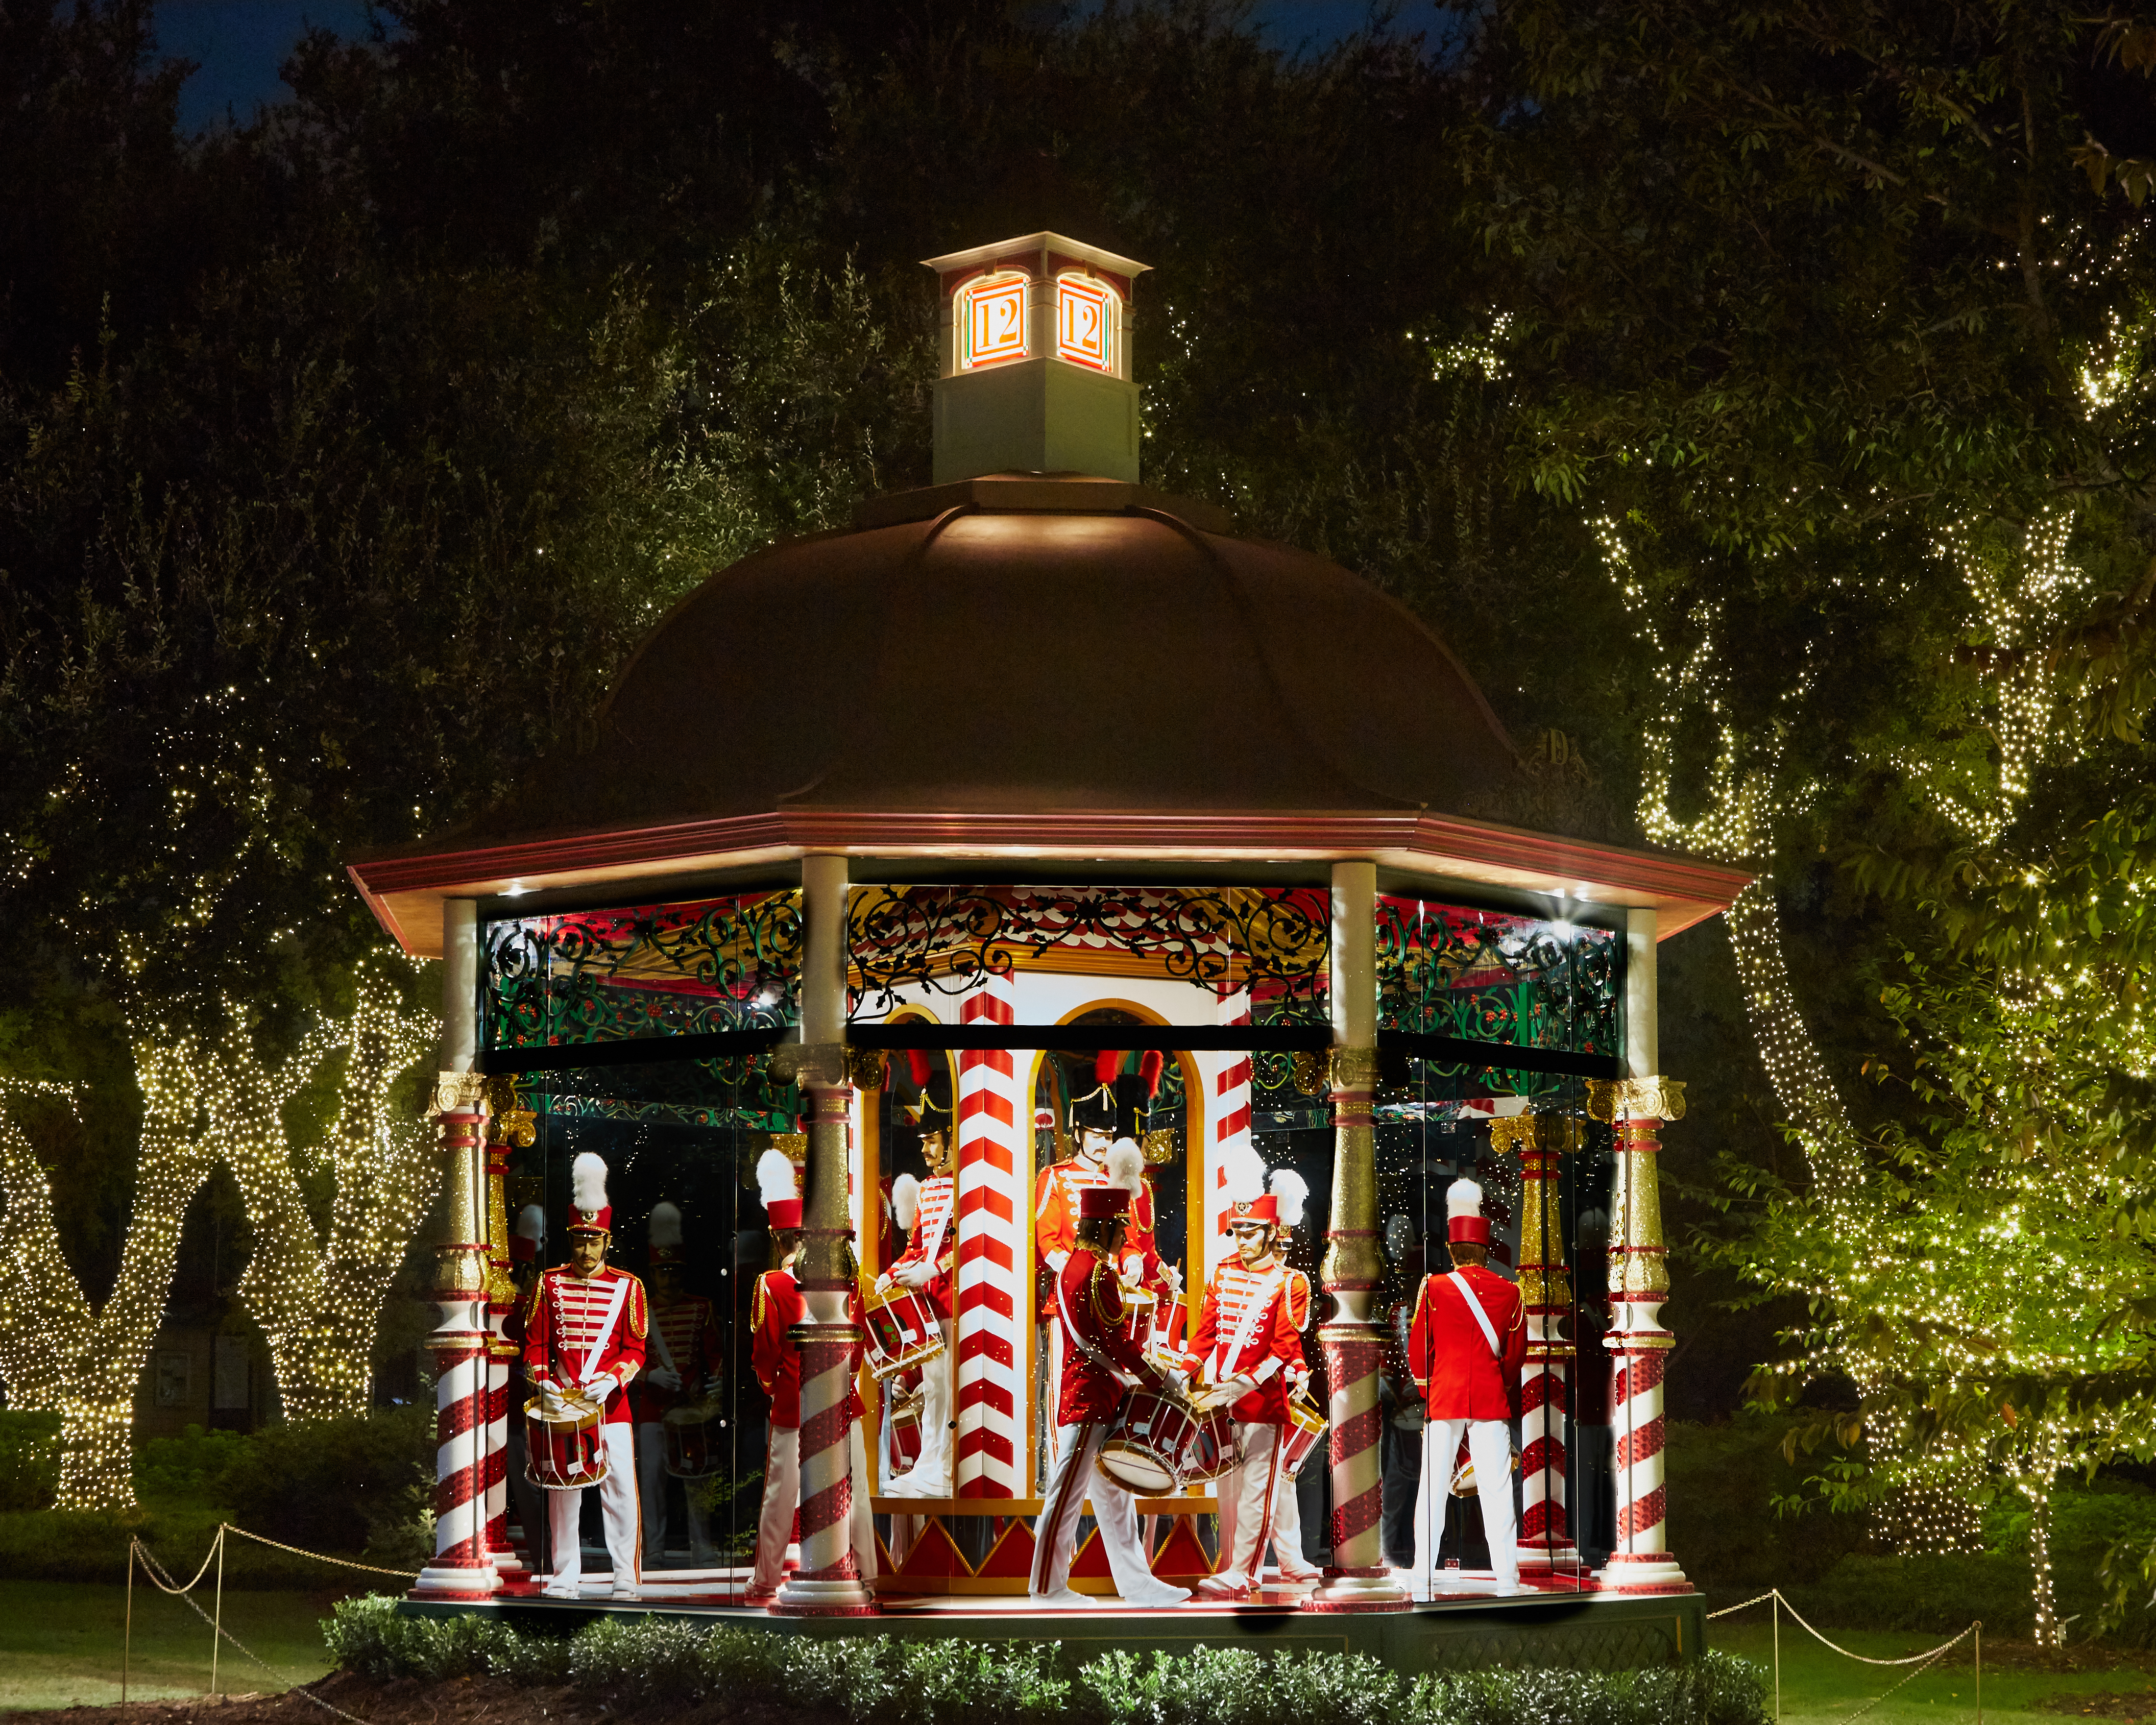 Holiday gazebo at the Dallas Arboretum.